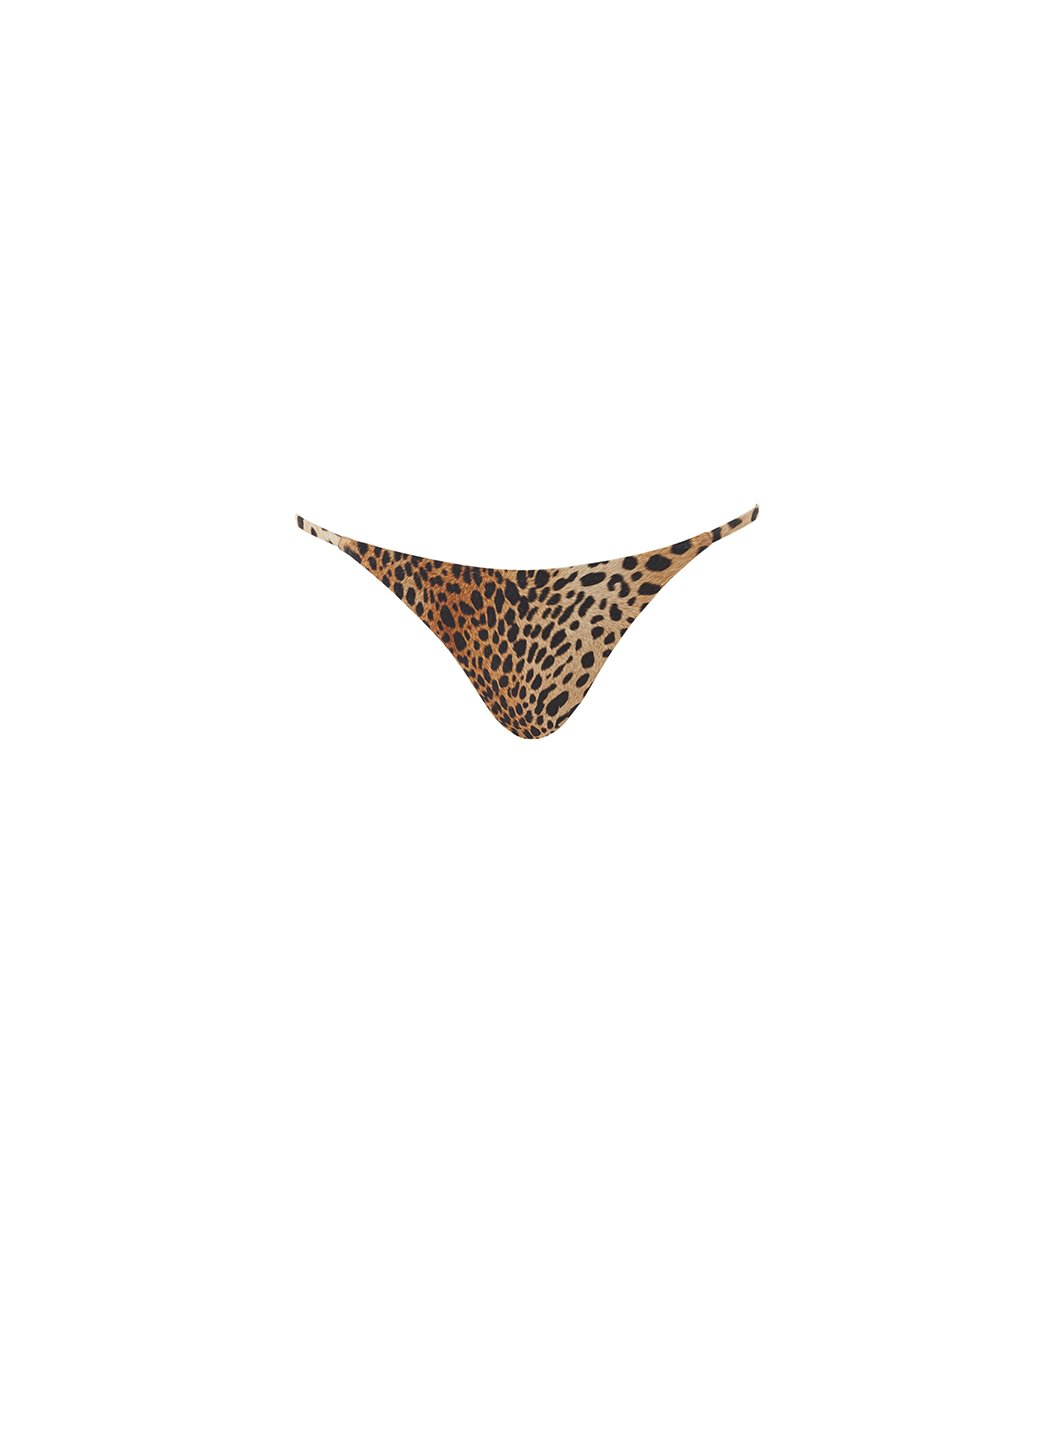 Exclusive St Tropez High Leg Bikini Bottoms Cheetah